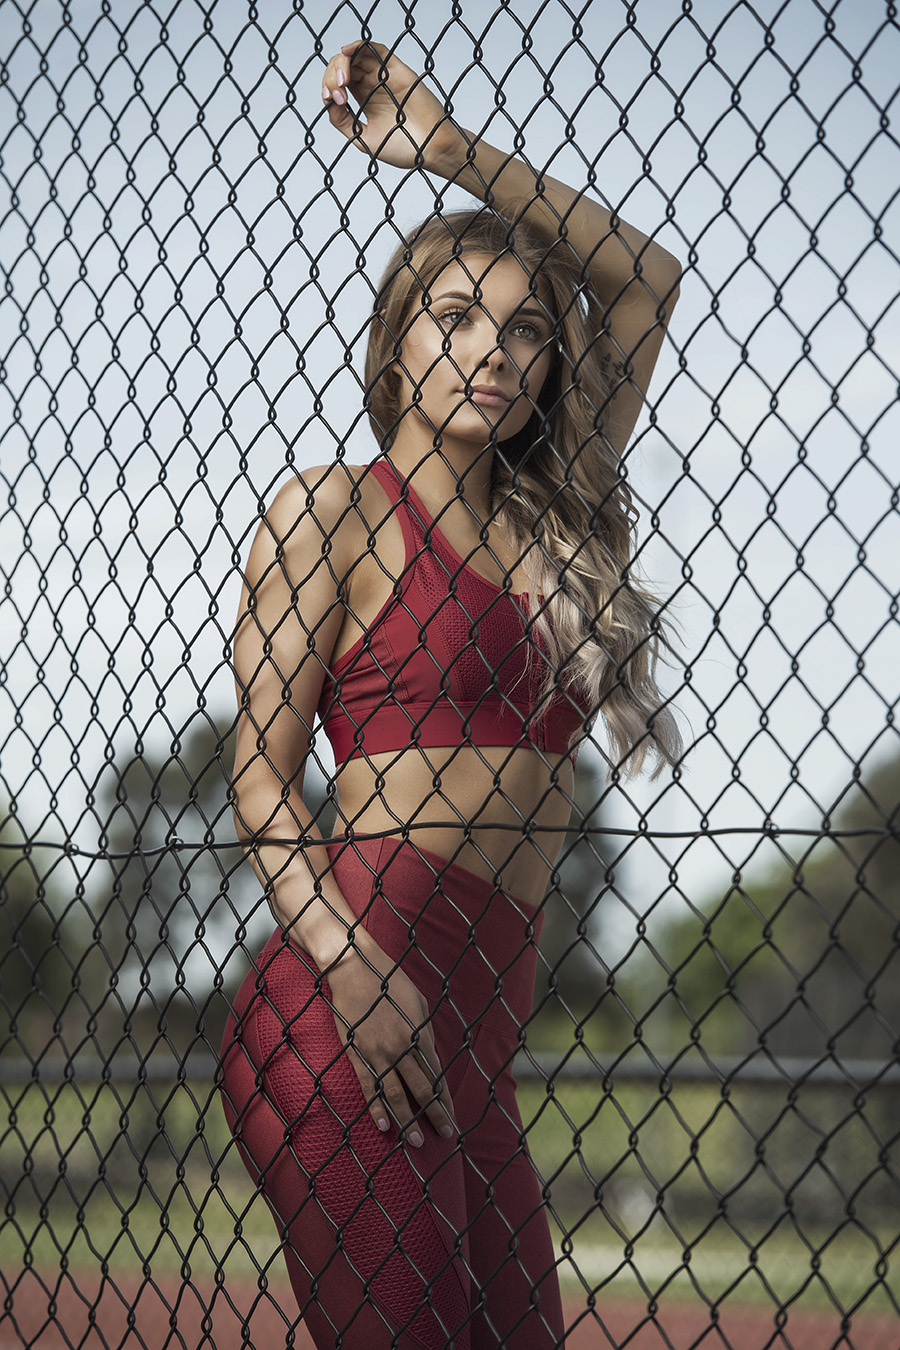 Nikita standing behind a wired fence